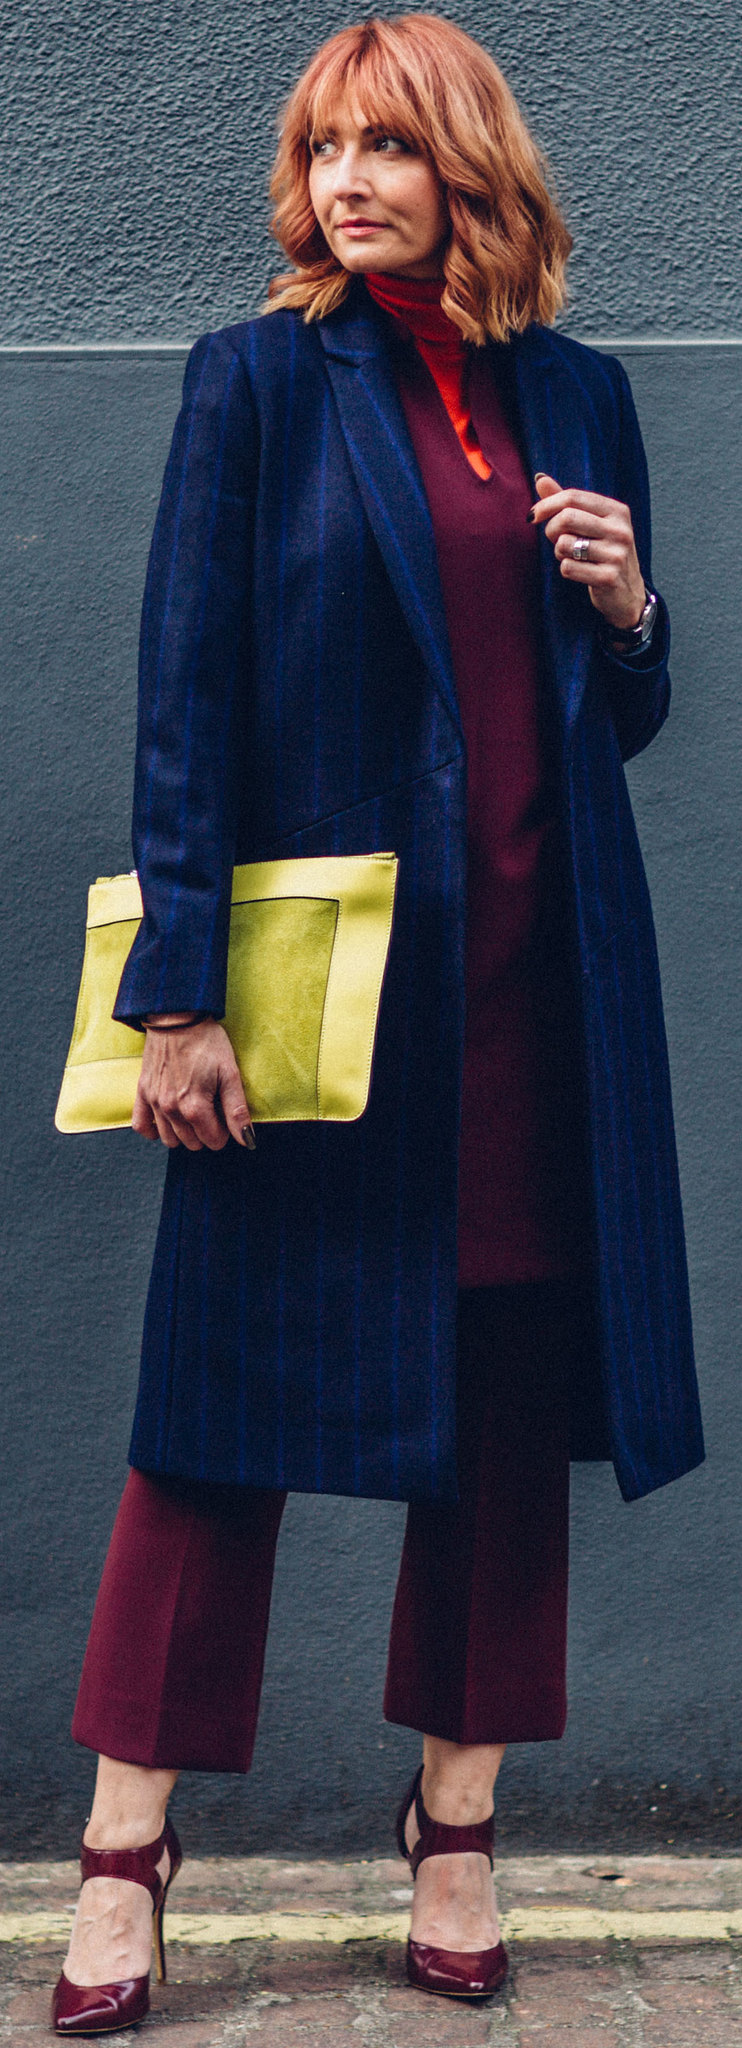 Bold jewel colours \ Autumn look \ fall outfit \ smart winter wear \ layering \ Jaeger \ Longline pinstripe coat, red roll neck, burgundy cocoon dress and cropped flares, yeloo suede clutch | Not Dressed As Lamb, over 40 style